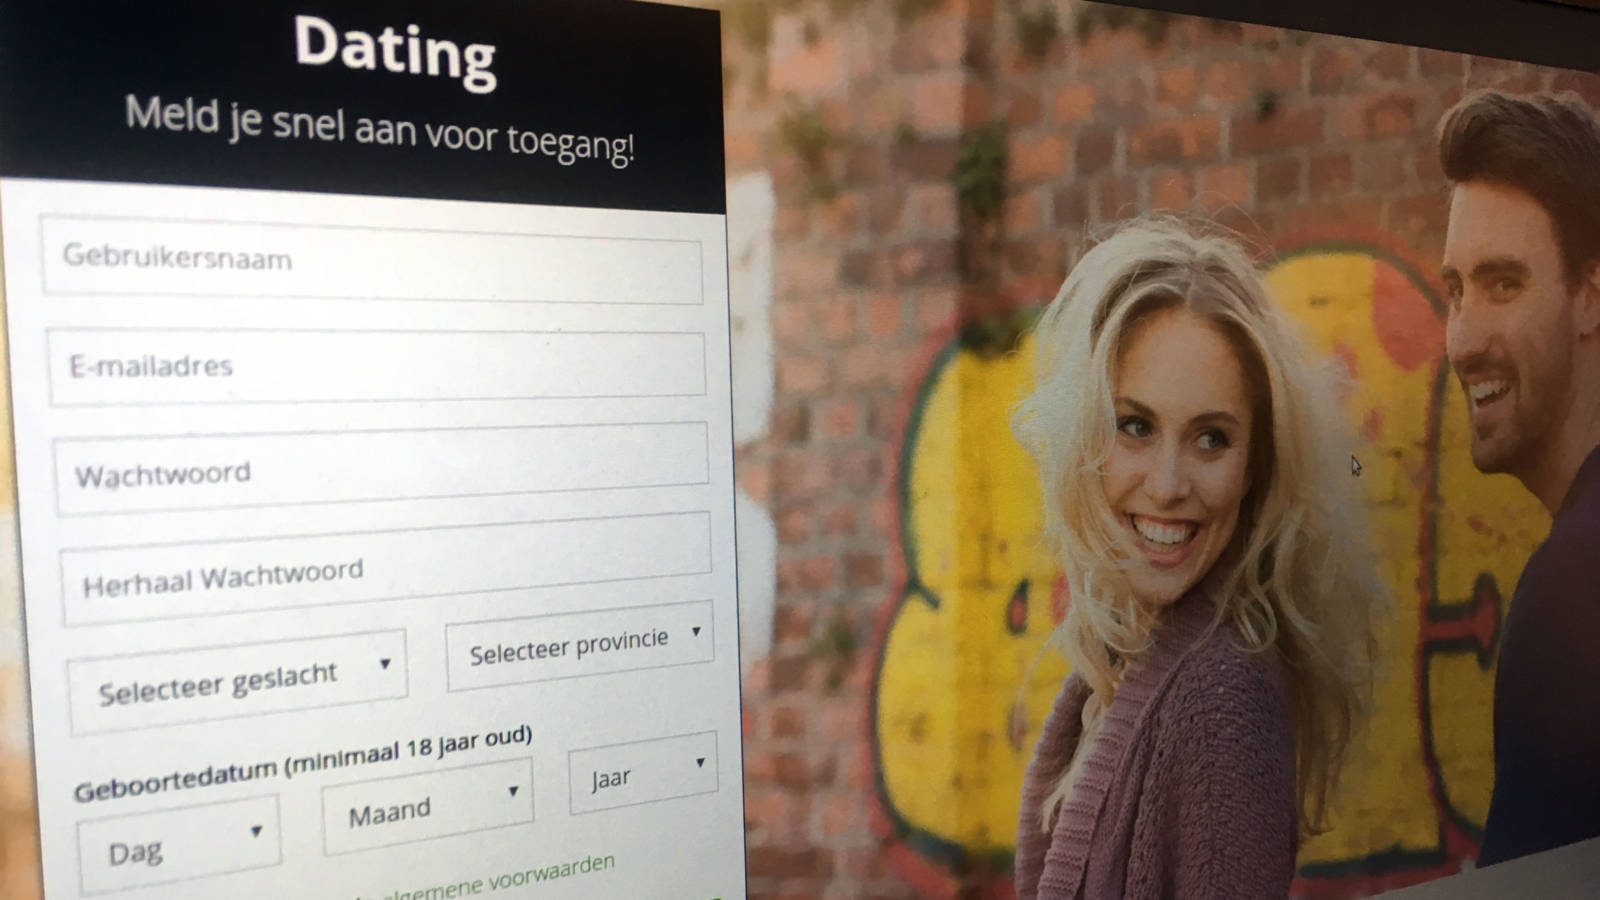 Gratis dating website Australië